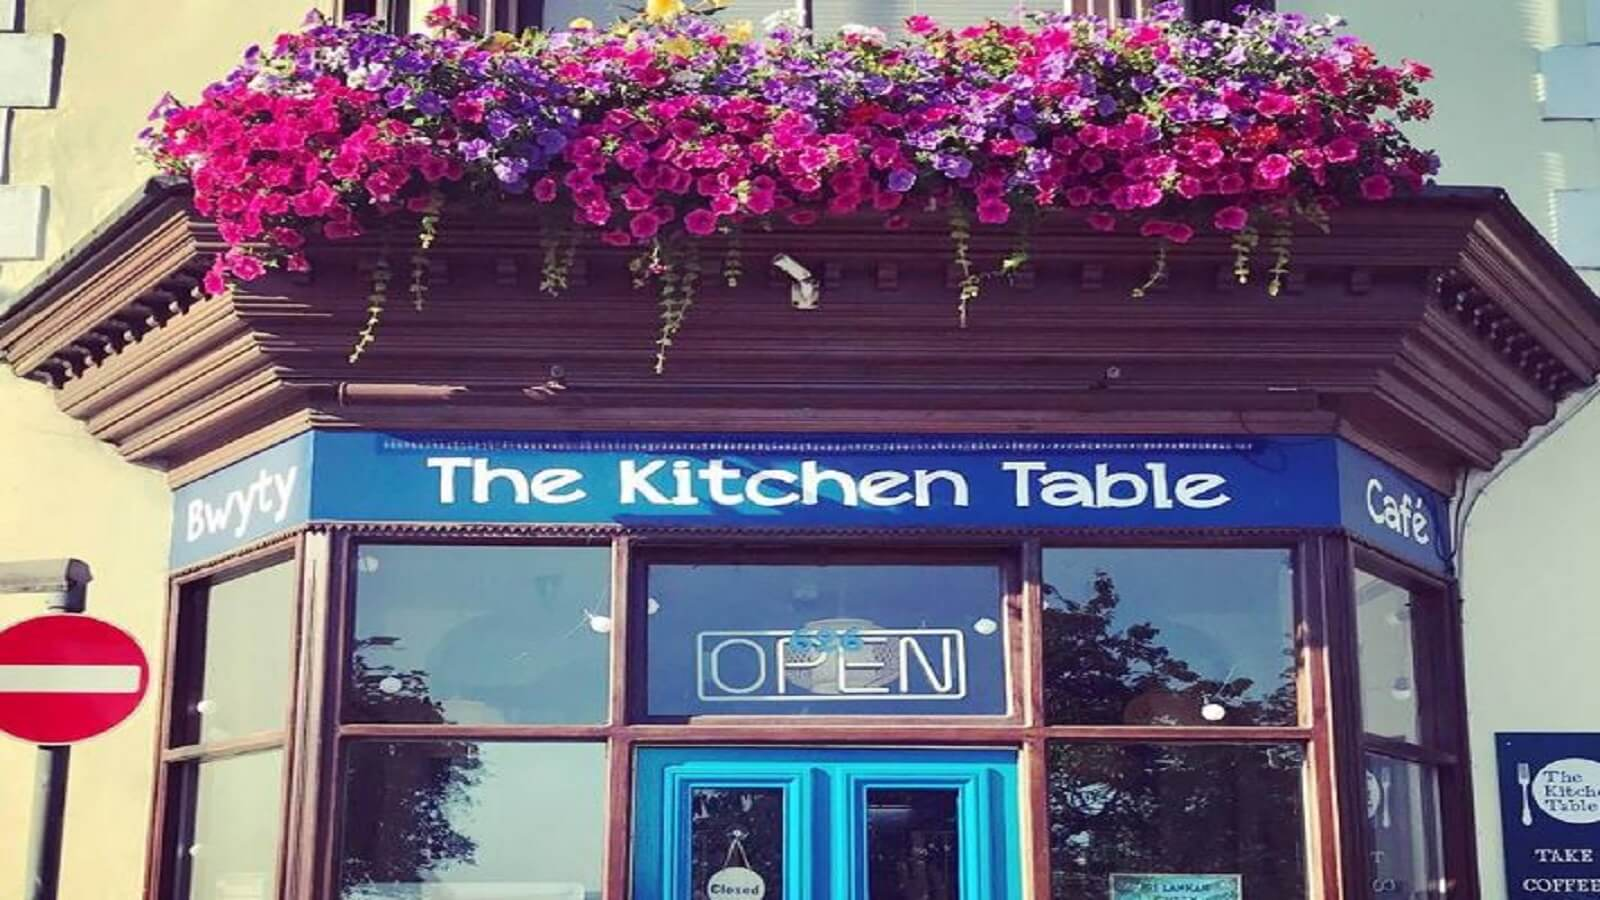 The Kitchen Table Café